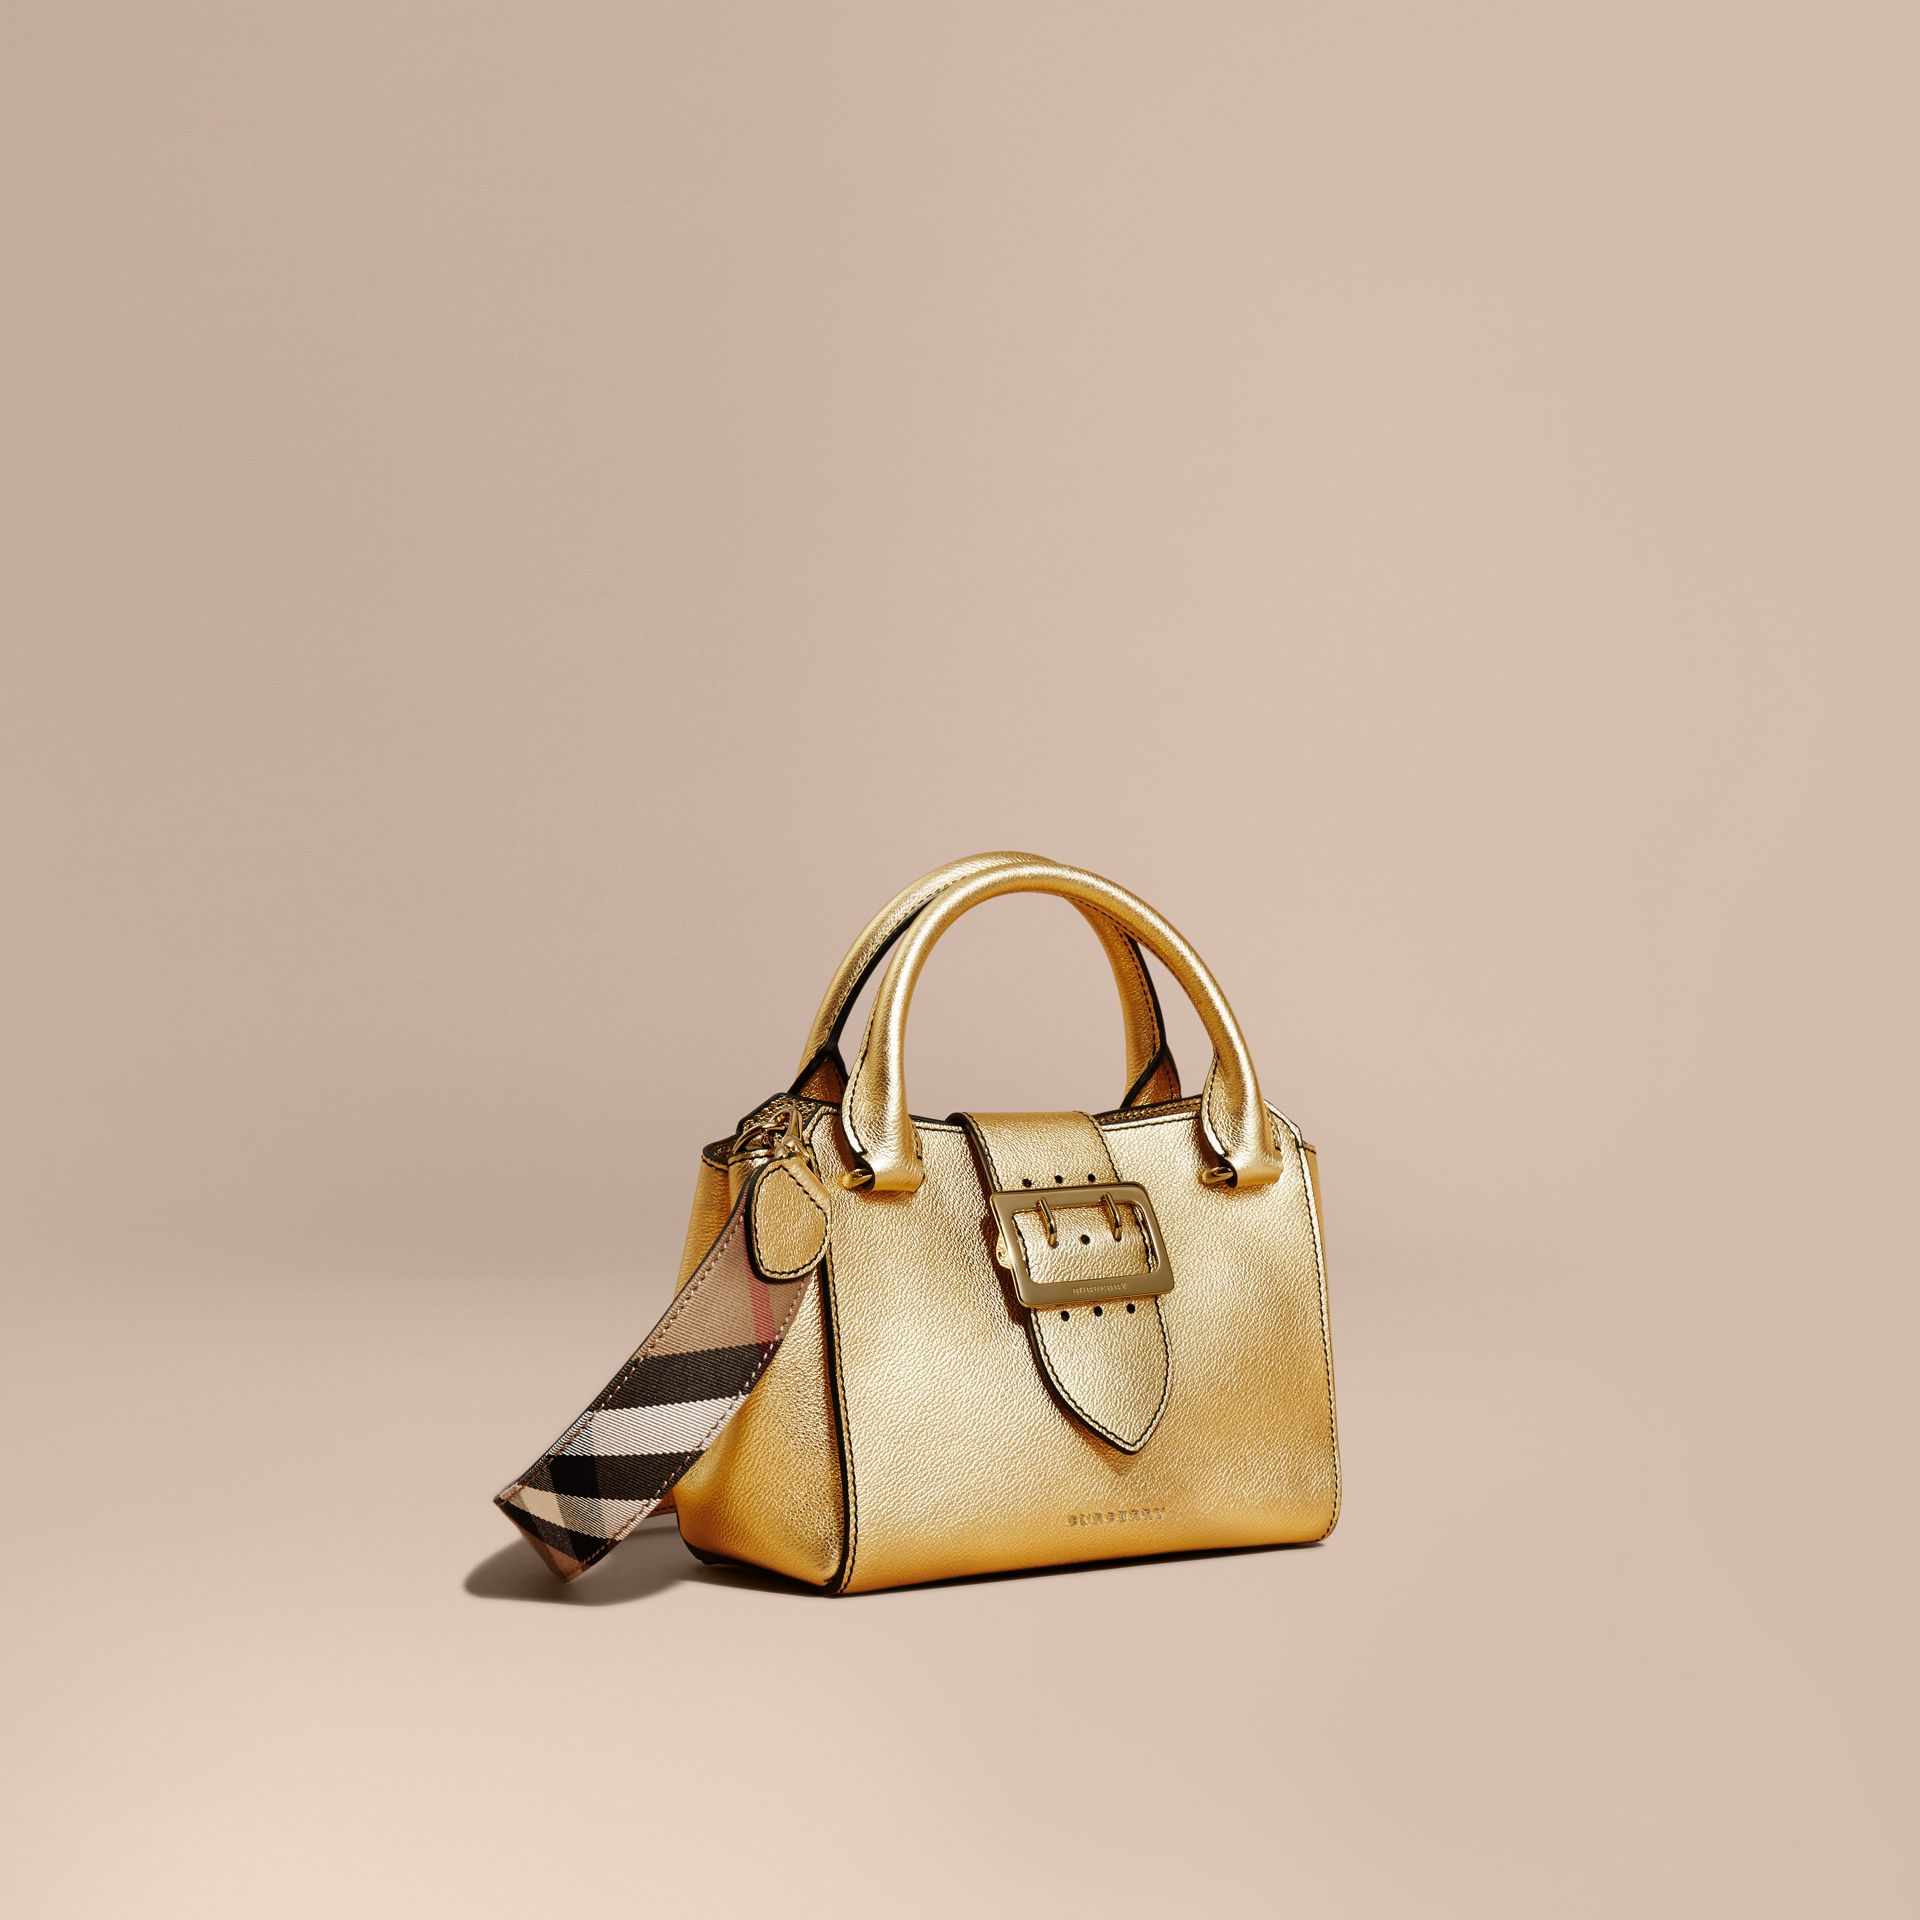 Gold The Small Buckle Tote in Metallic Leather Gold - gallery image 1